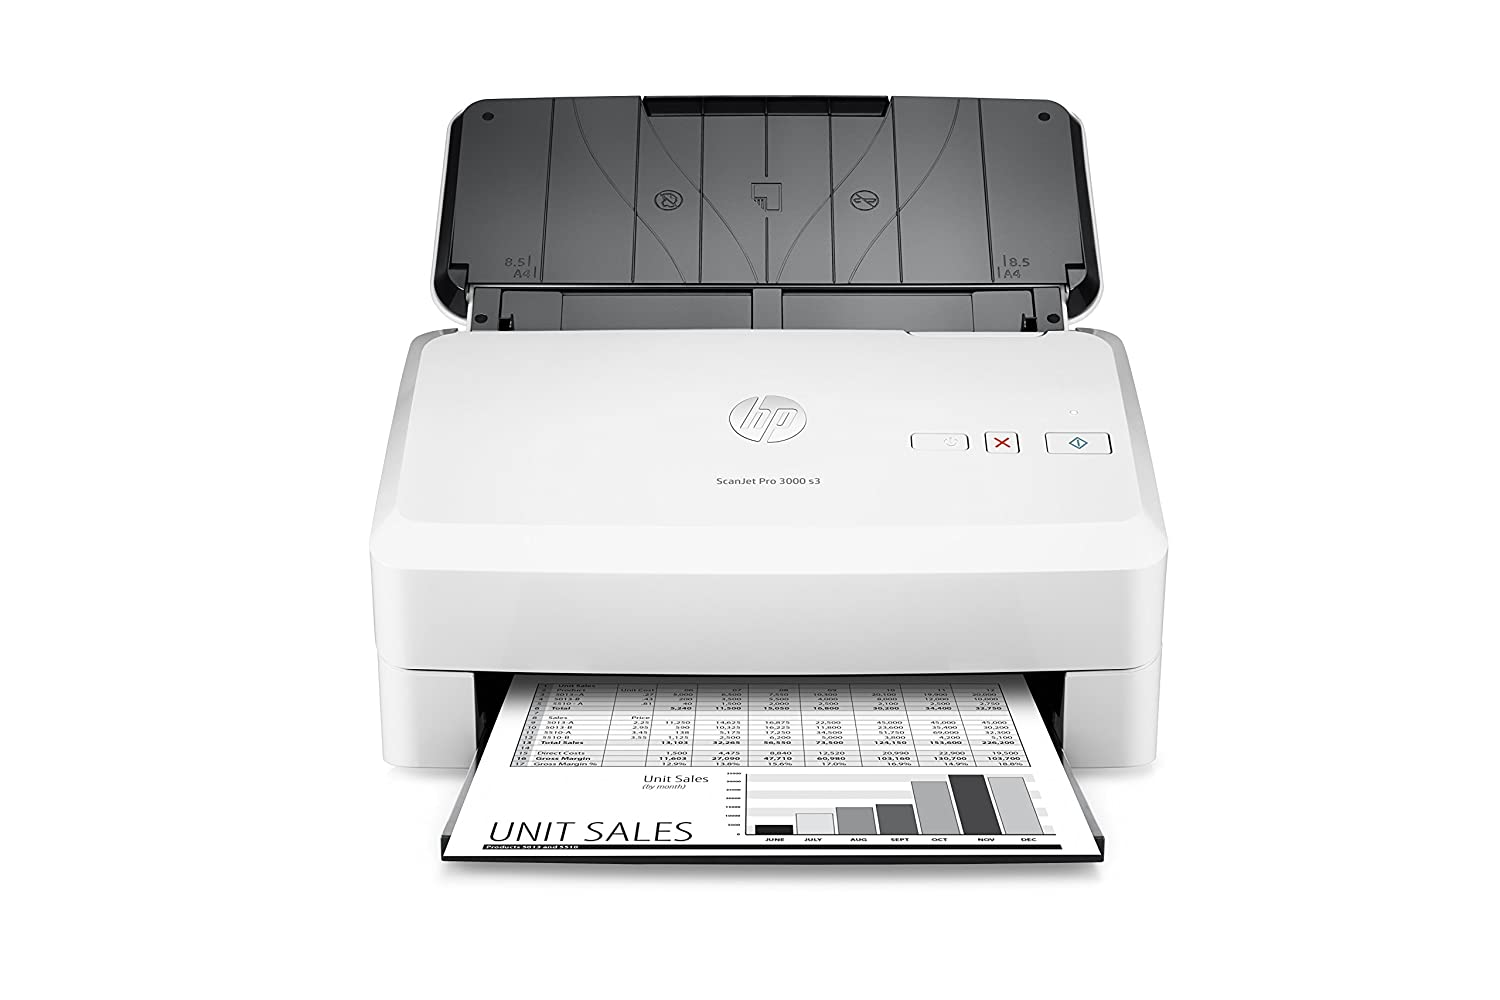 HP ScanJet Pro 3000 S3 Scanner Black Friday Deals 2020